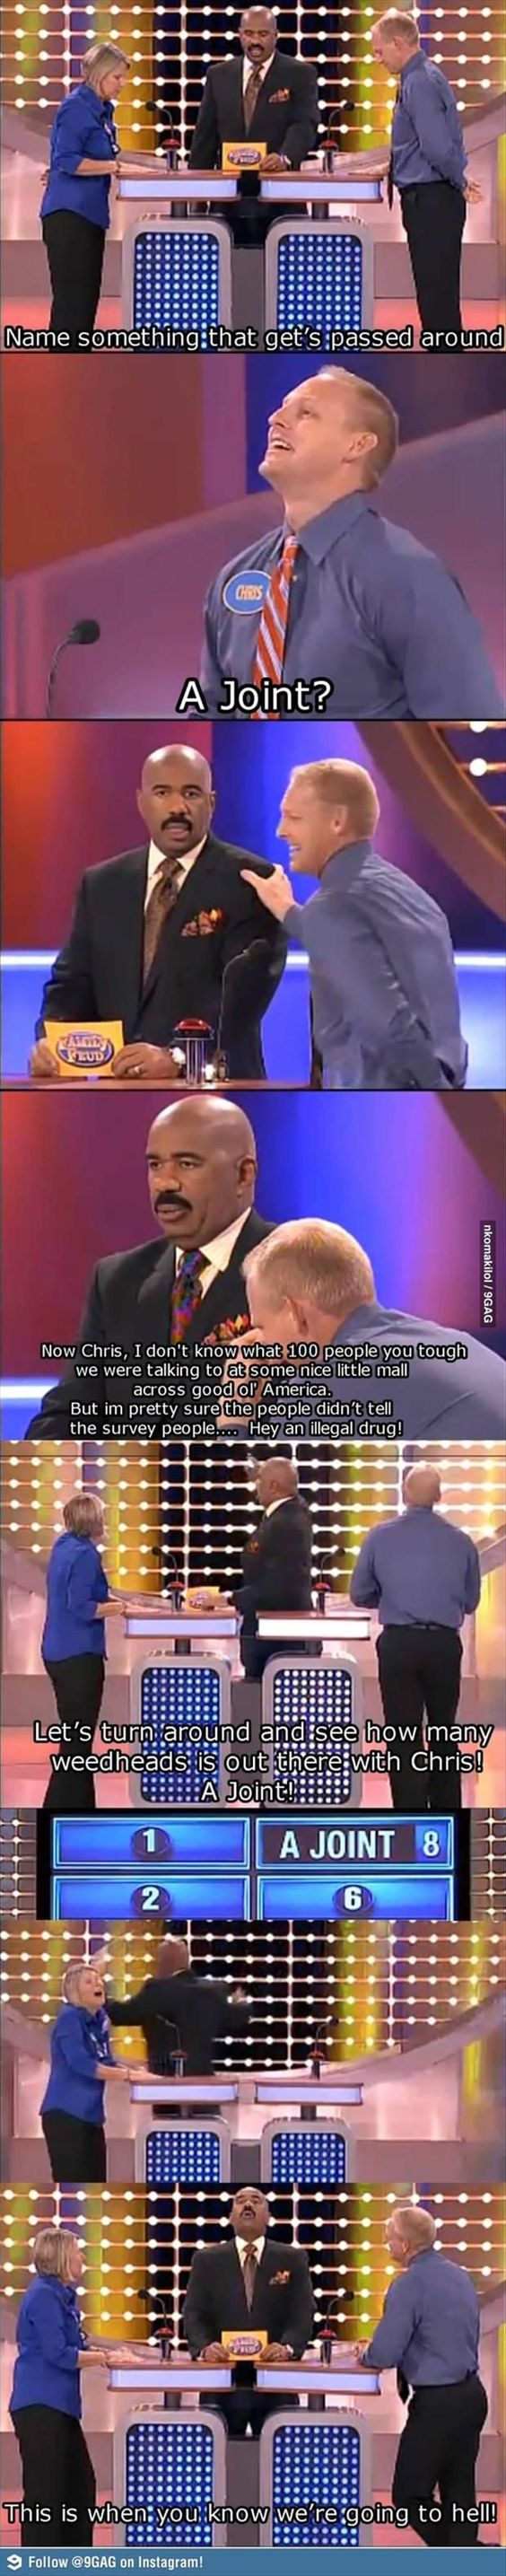 Oh family feud.... How I love this show since Steve Harvey took over as host! His responses and expressions are priceless! :)   See more about family feud, steve harvey and families. #family #fued